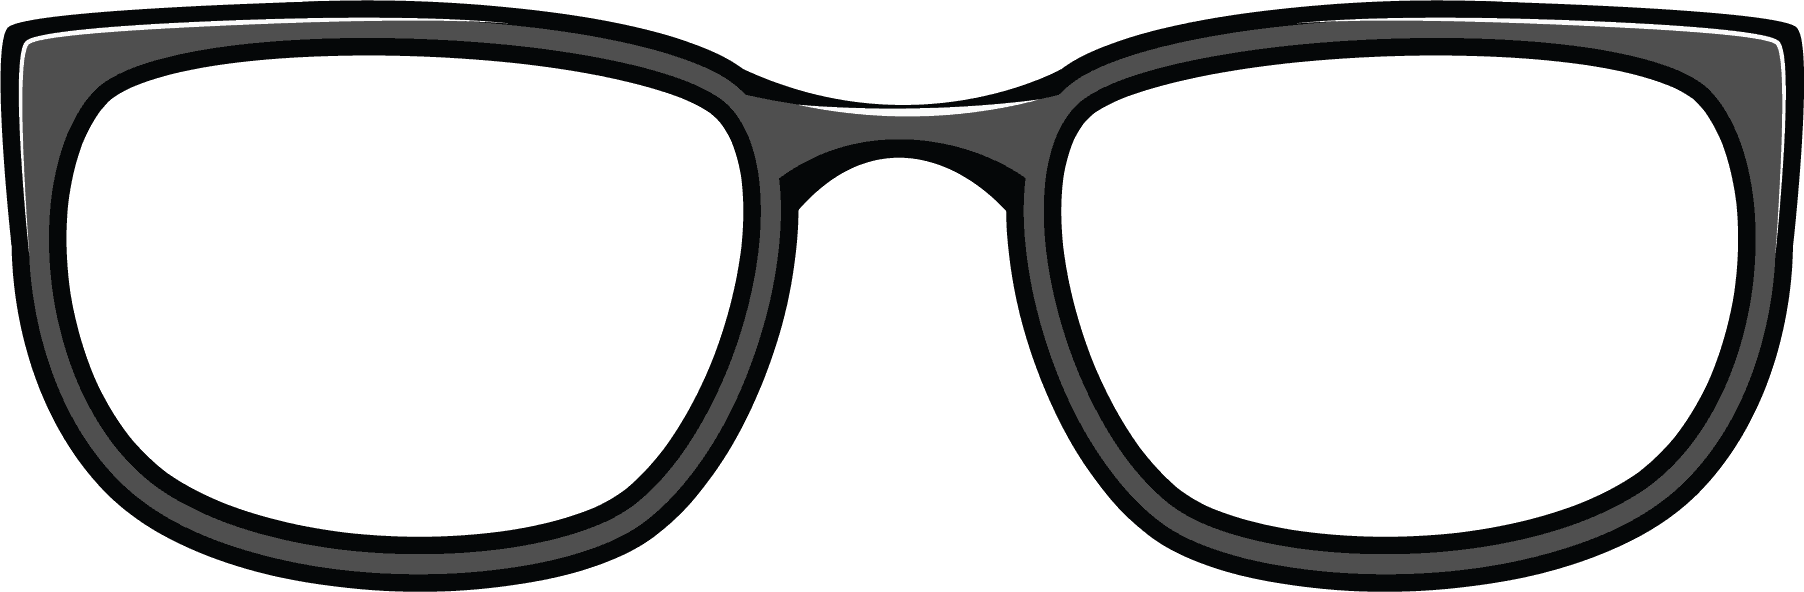 Eyeglasses clipart 70 glass. Spectacles hipster pencil and